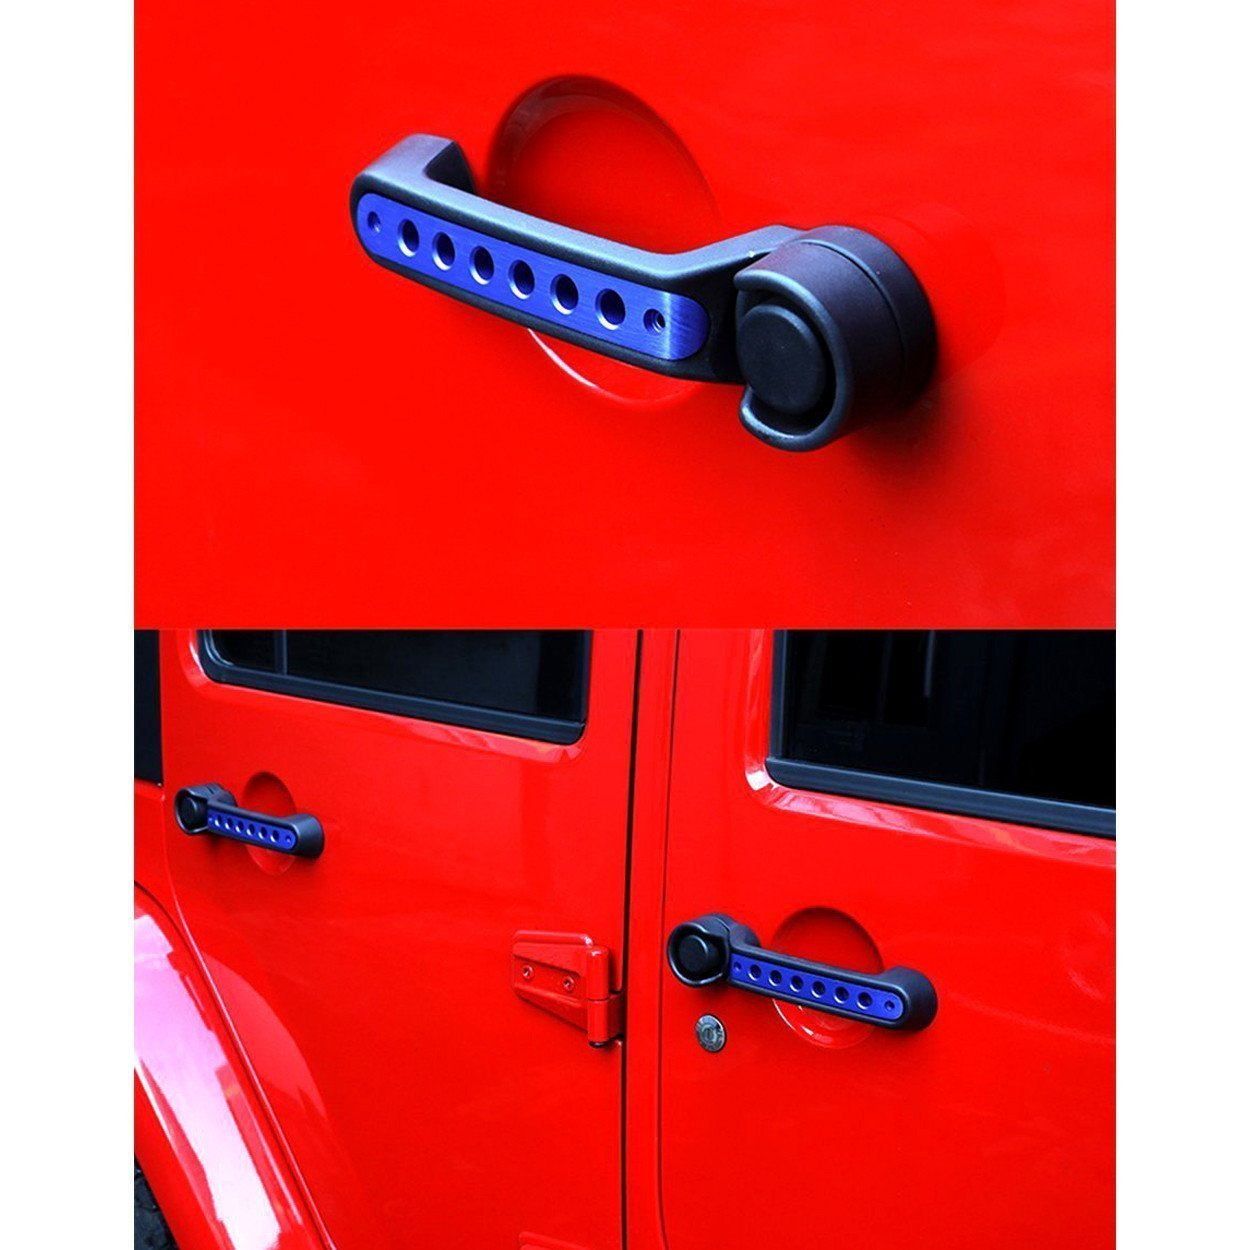 Blue Handle Insert Trim for 2 Door Jeep JK 07-17